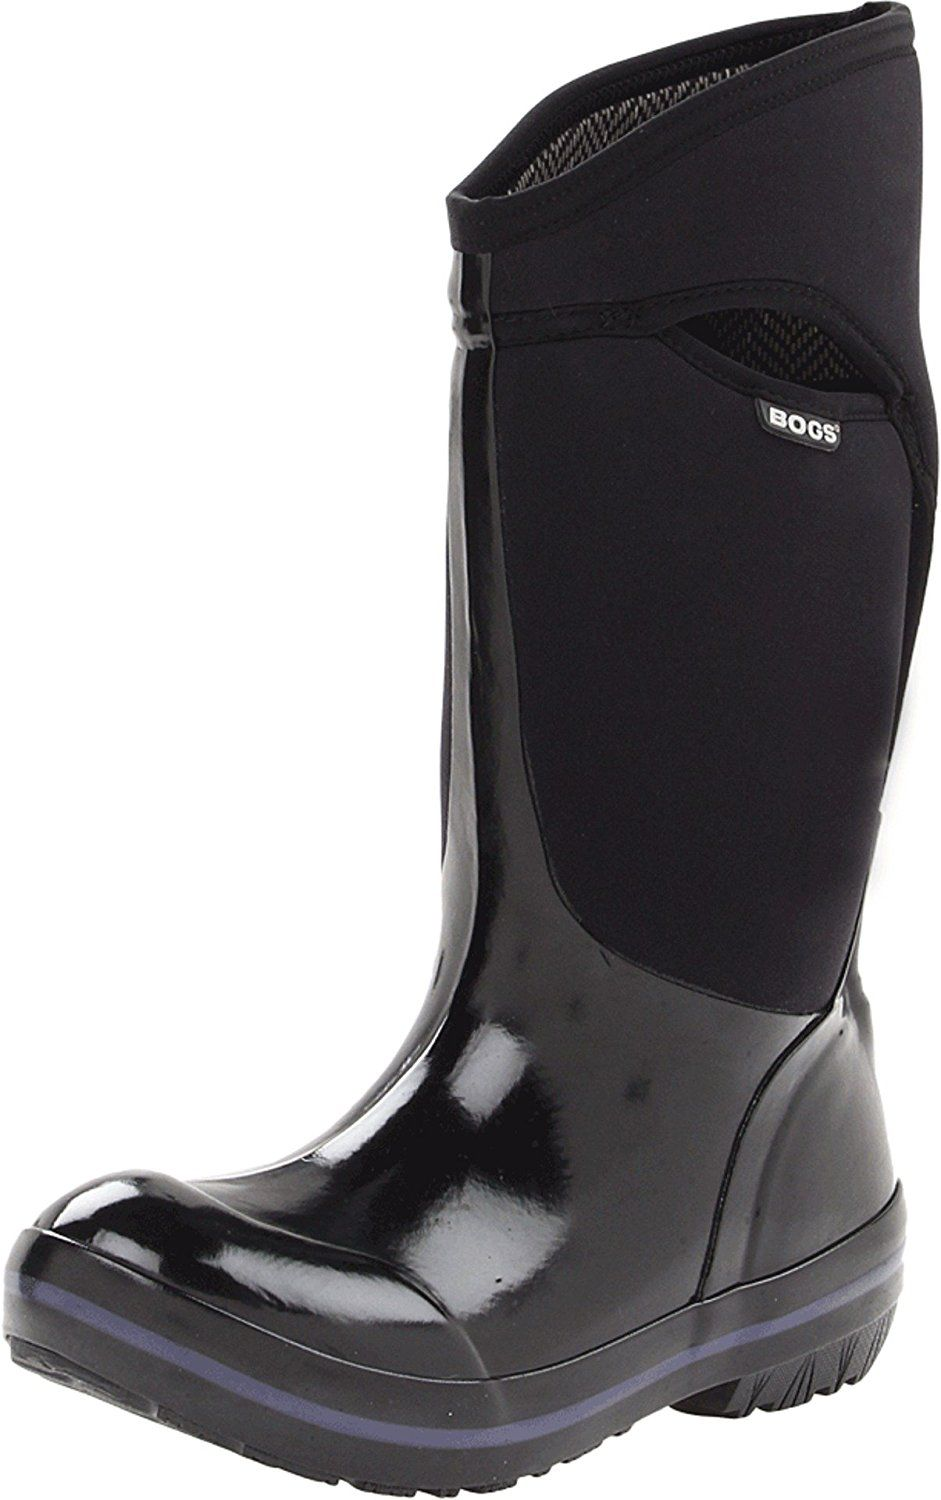 Bogs Women S Plimsoll Tall Waterproof Insulated Boot Discover This Special Product Click The Image Boots Boots Womens Mid Calf Boots Womens Boots